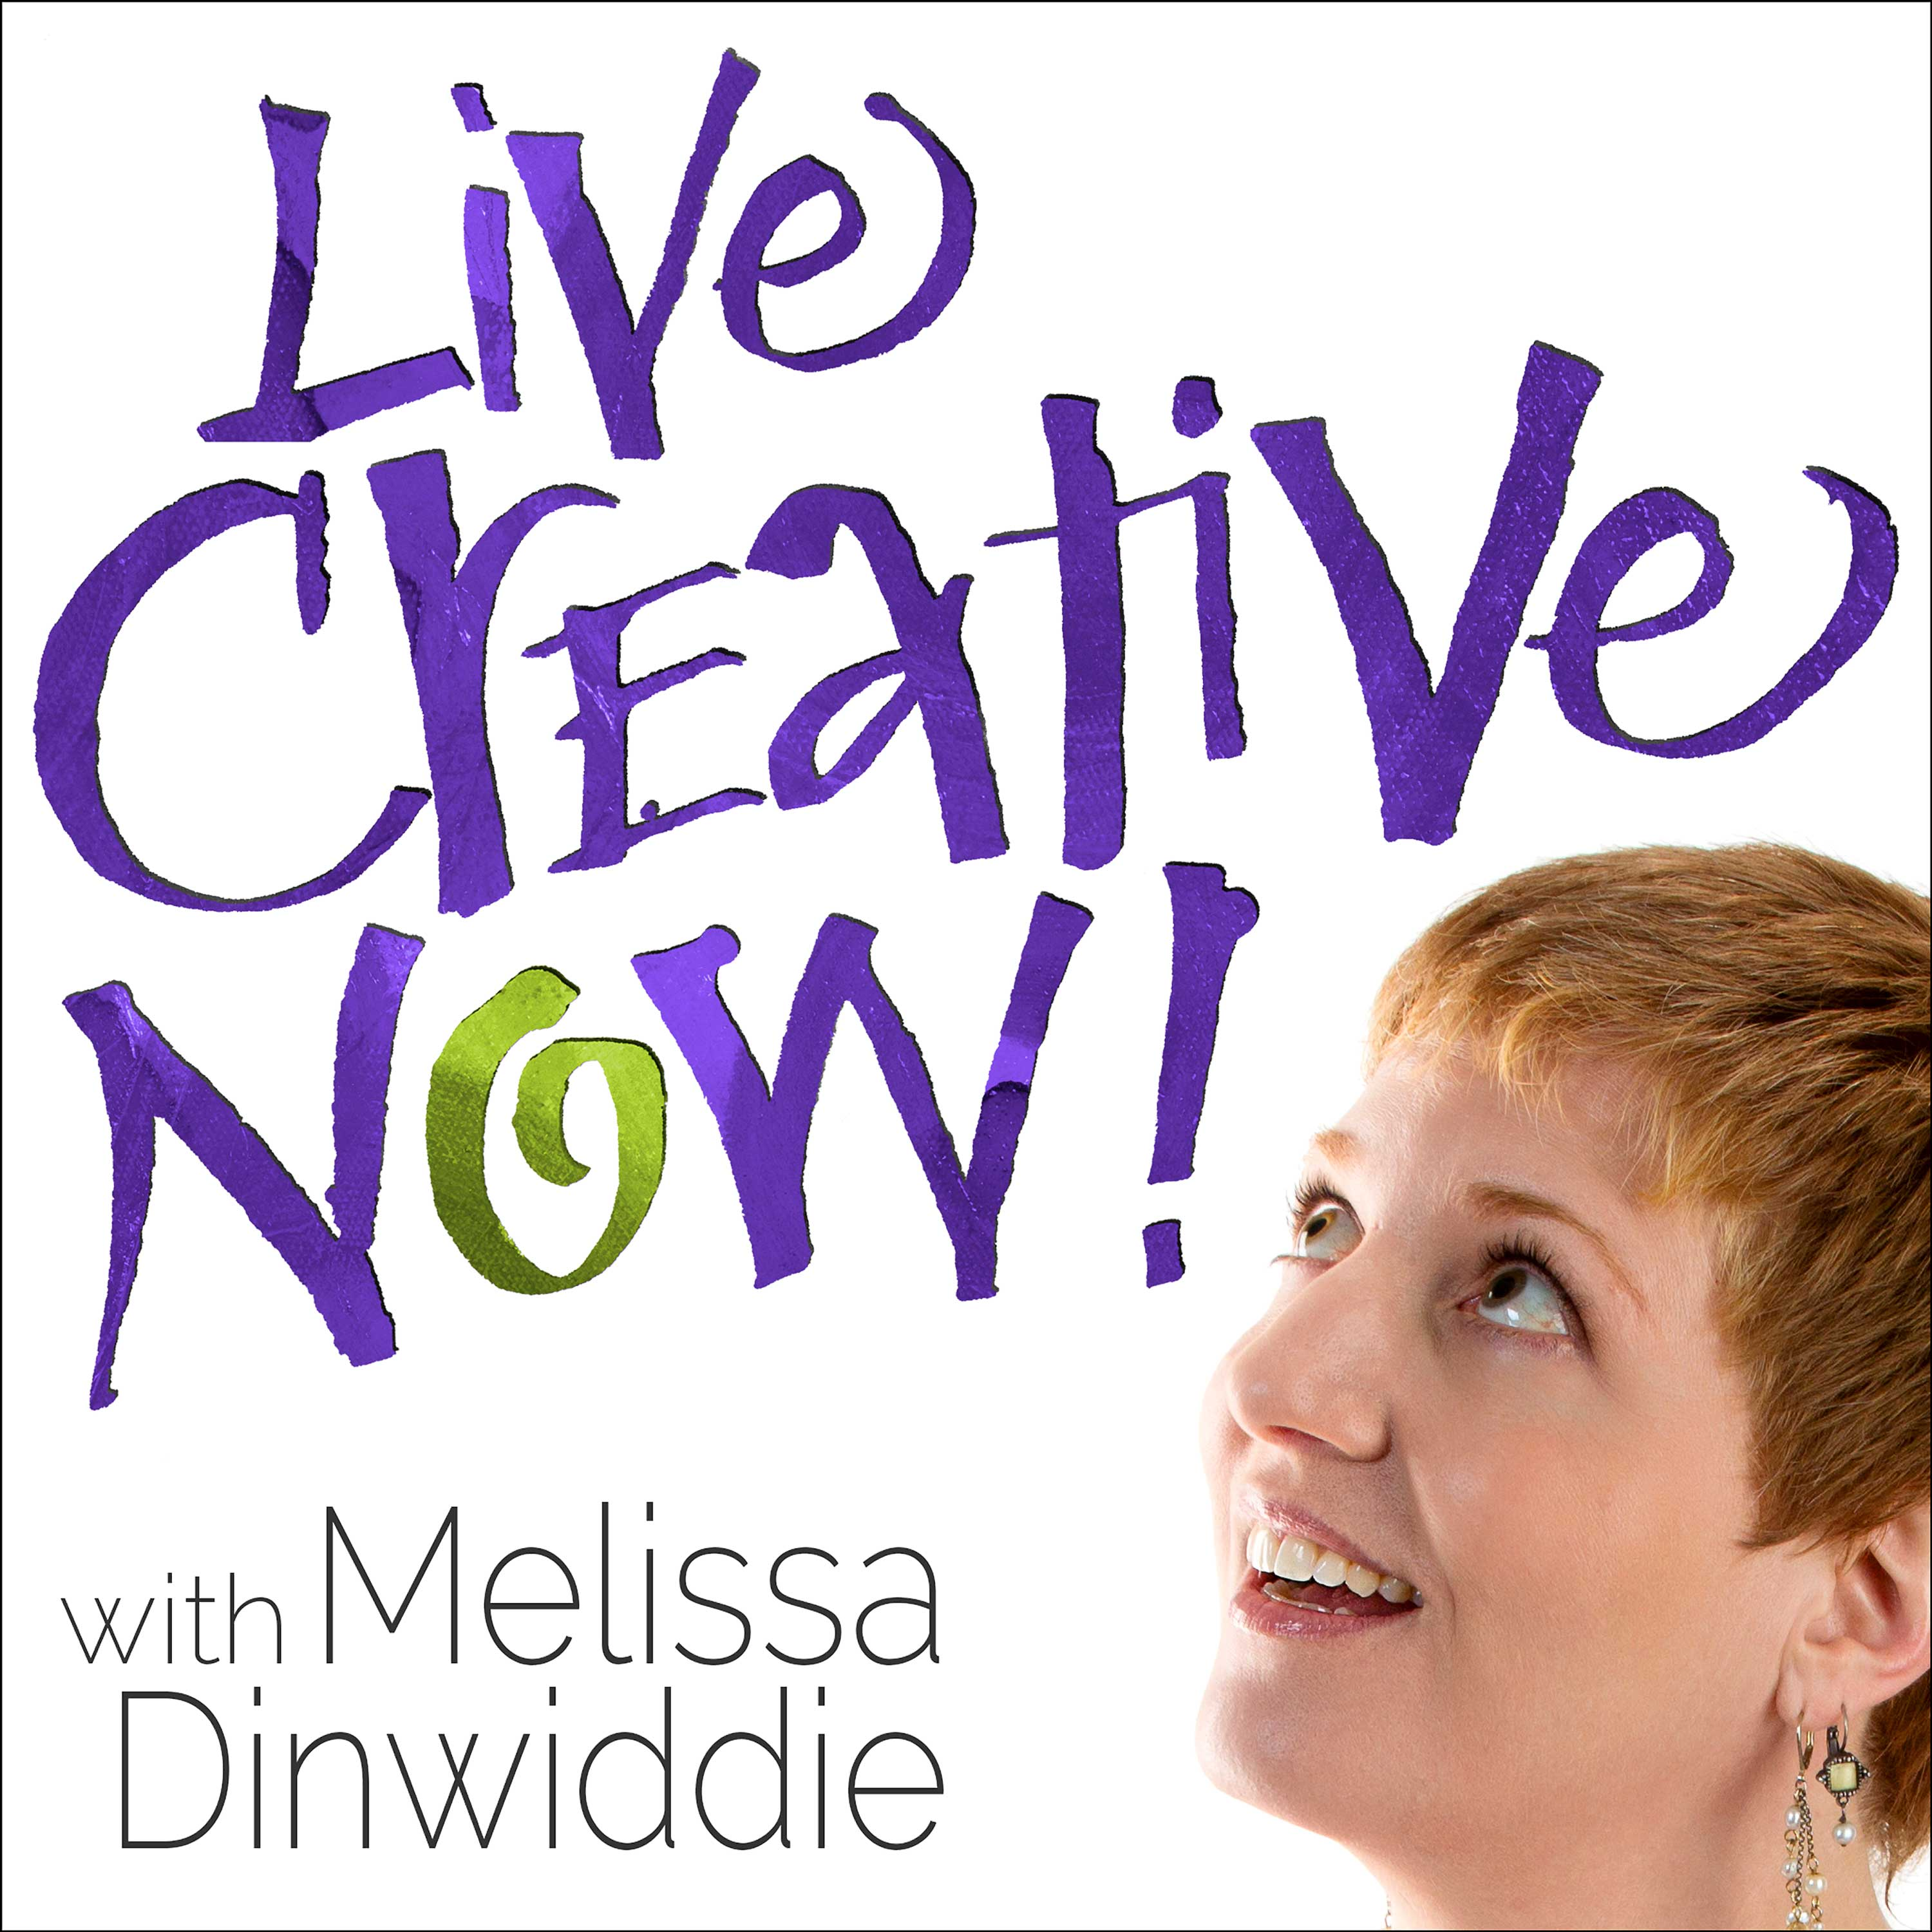 Live Creative Now! with Melissa Dinwiddie: Happiness | Creativity | Productivity | Practical Inspiration | Lifestyle Design for Multi-Passionate People